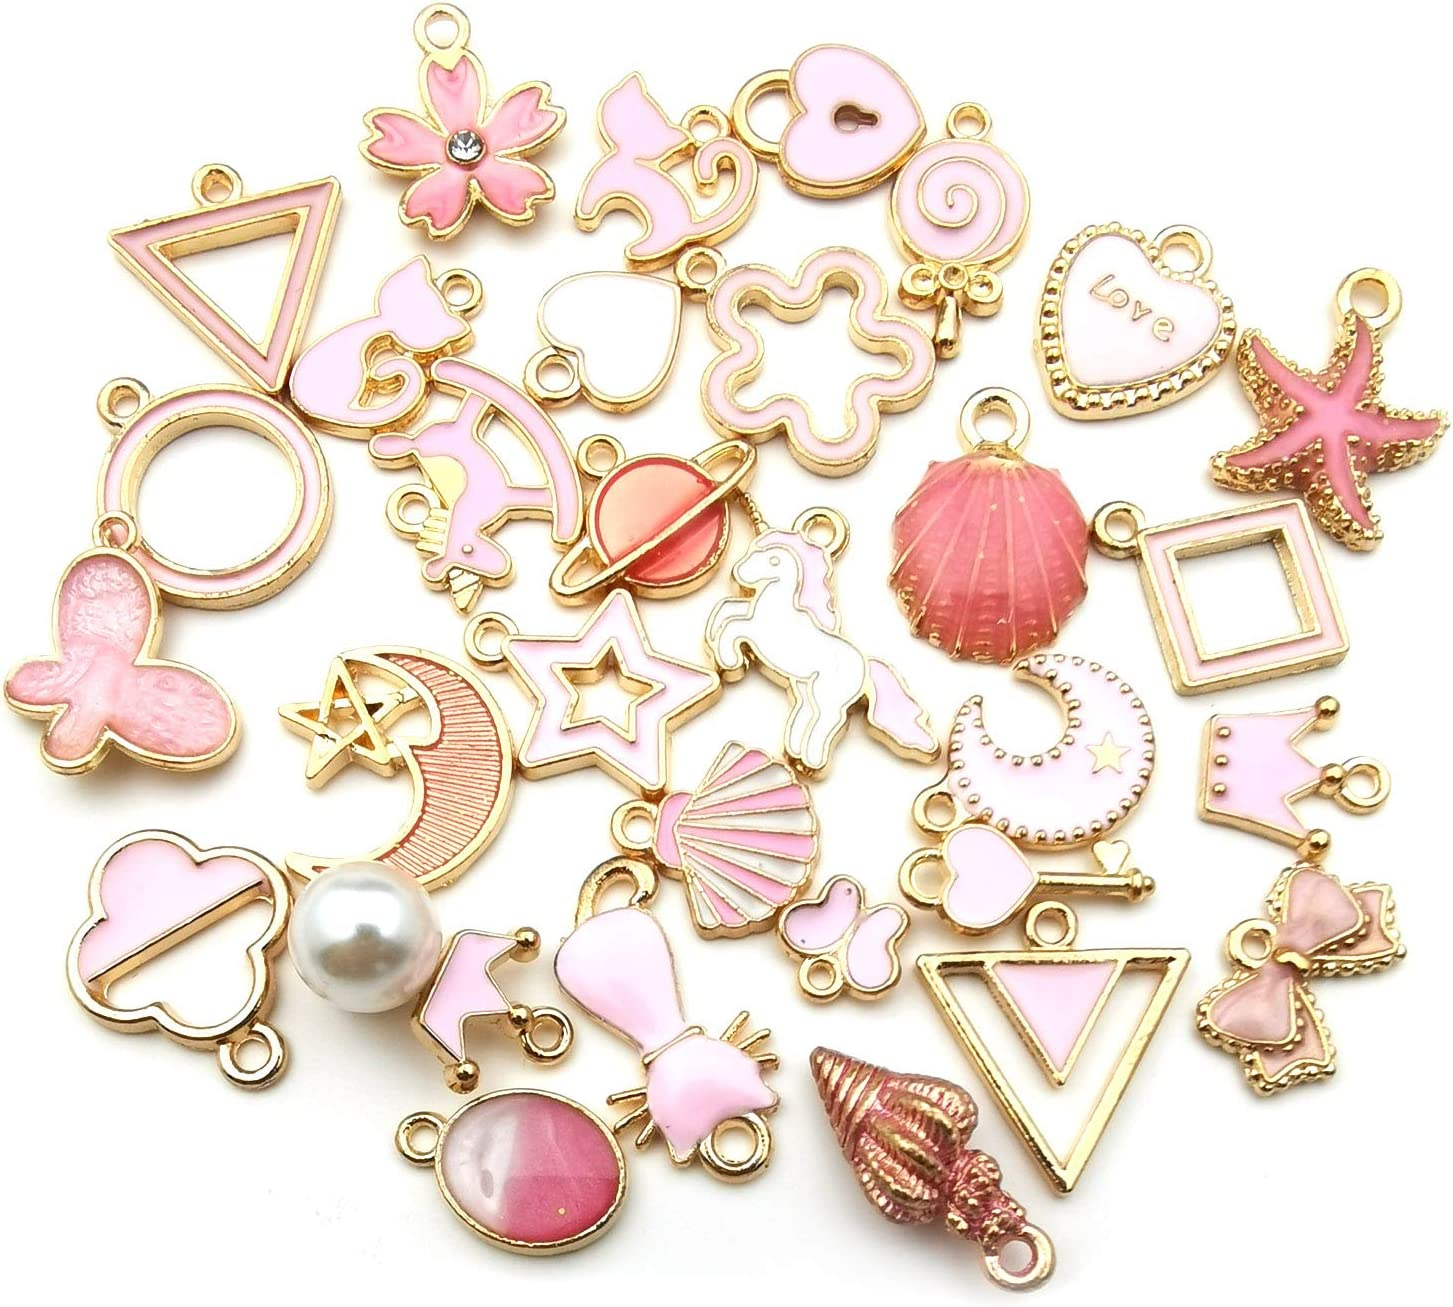 WOCRAFT 60pcs Assorted Gold Plated Pink Enamel Charm Pendant for DIY Jewelry Making Necklace Bracelet Earring DIY Jewelry Accessories Charms M347